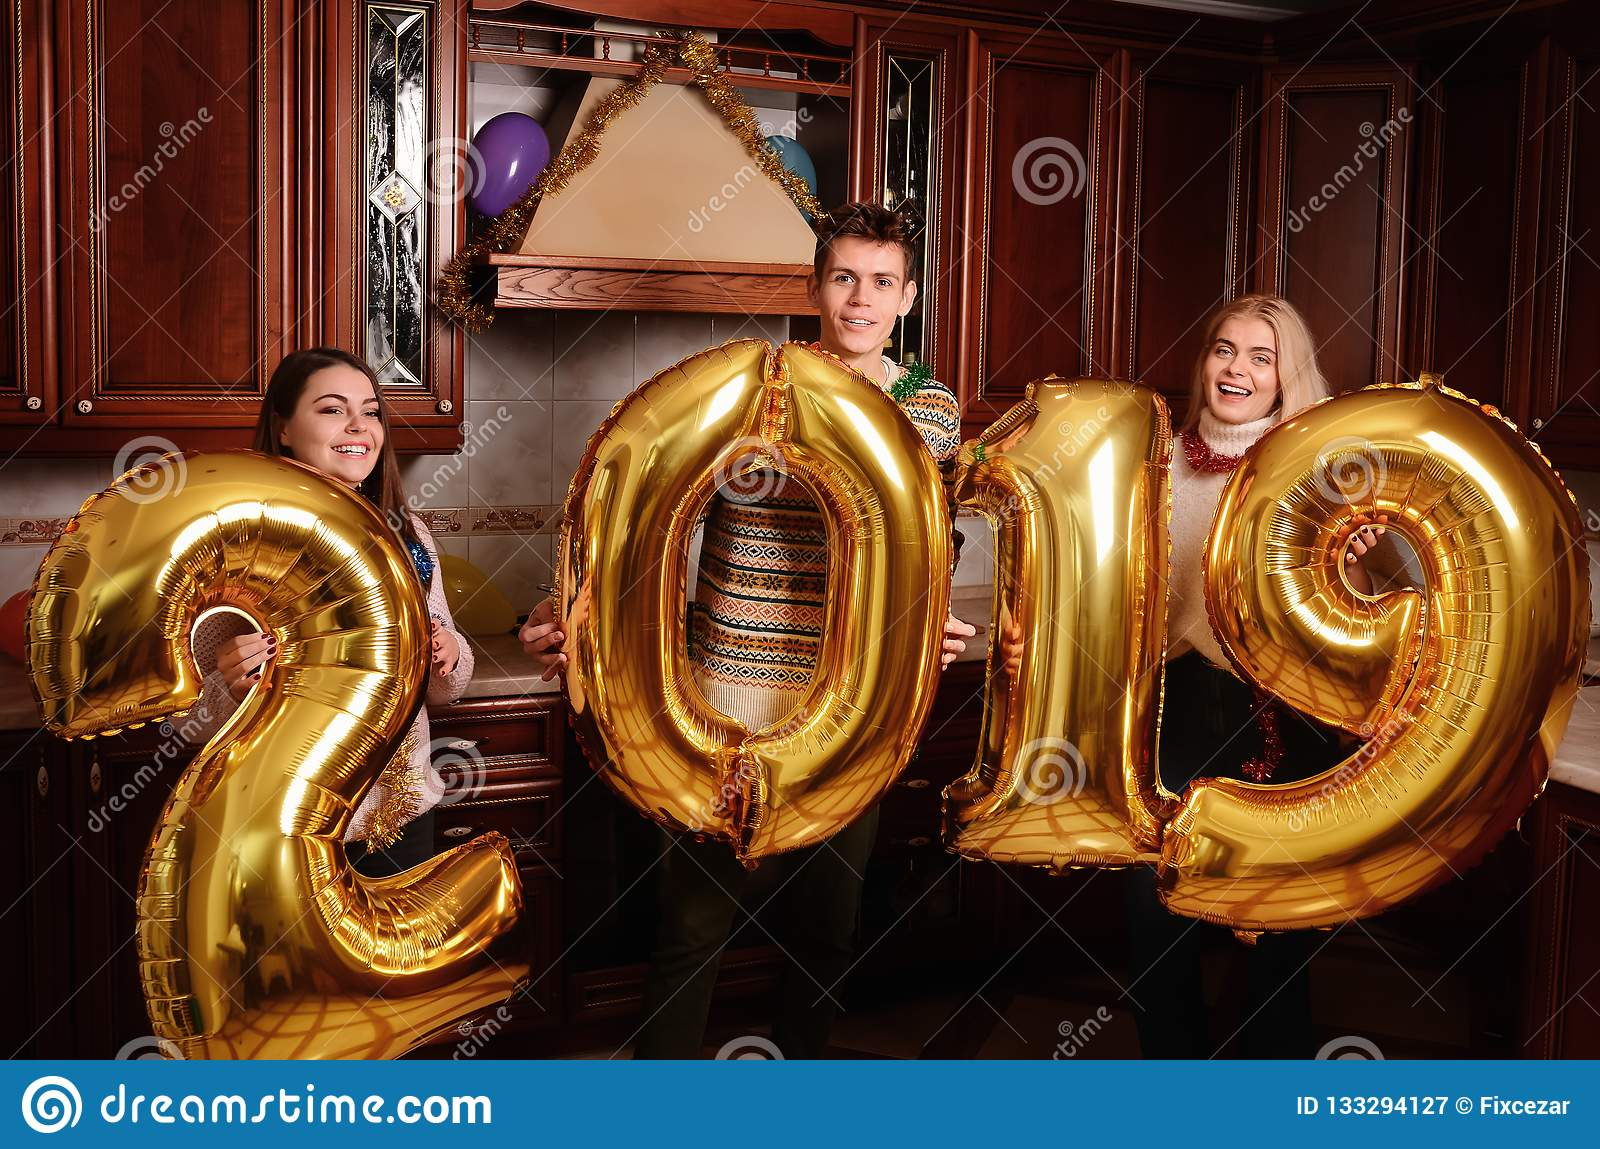 New 2019 Year is coming. Group of cheerful young people carrying